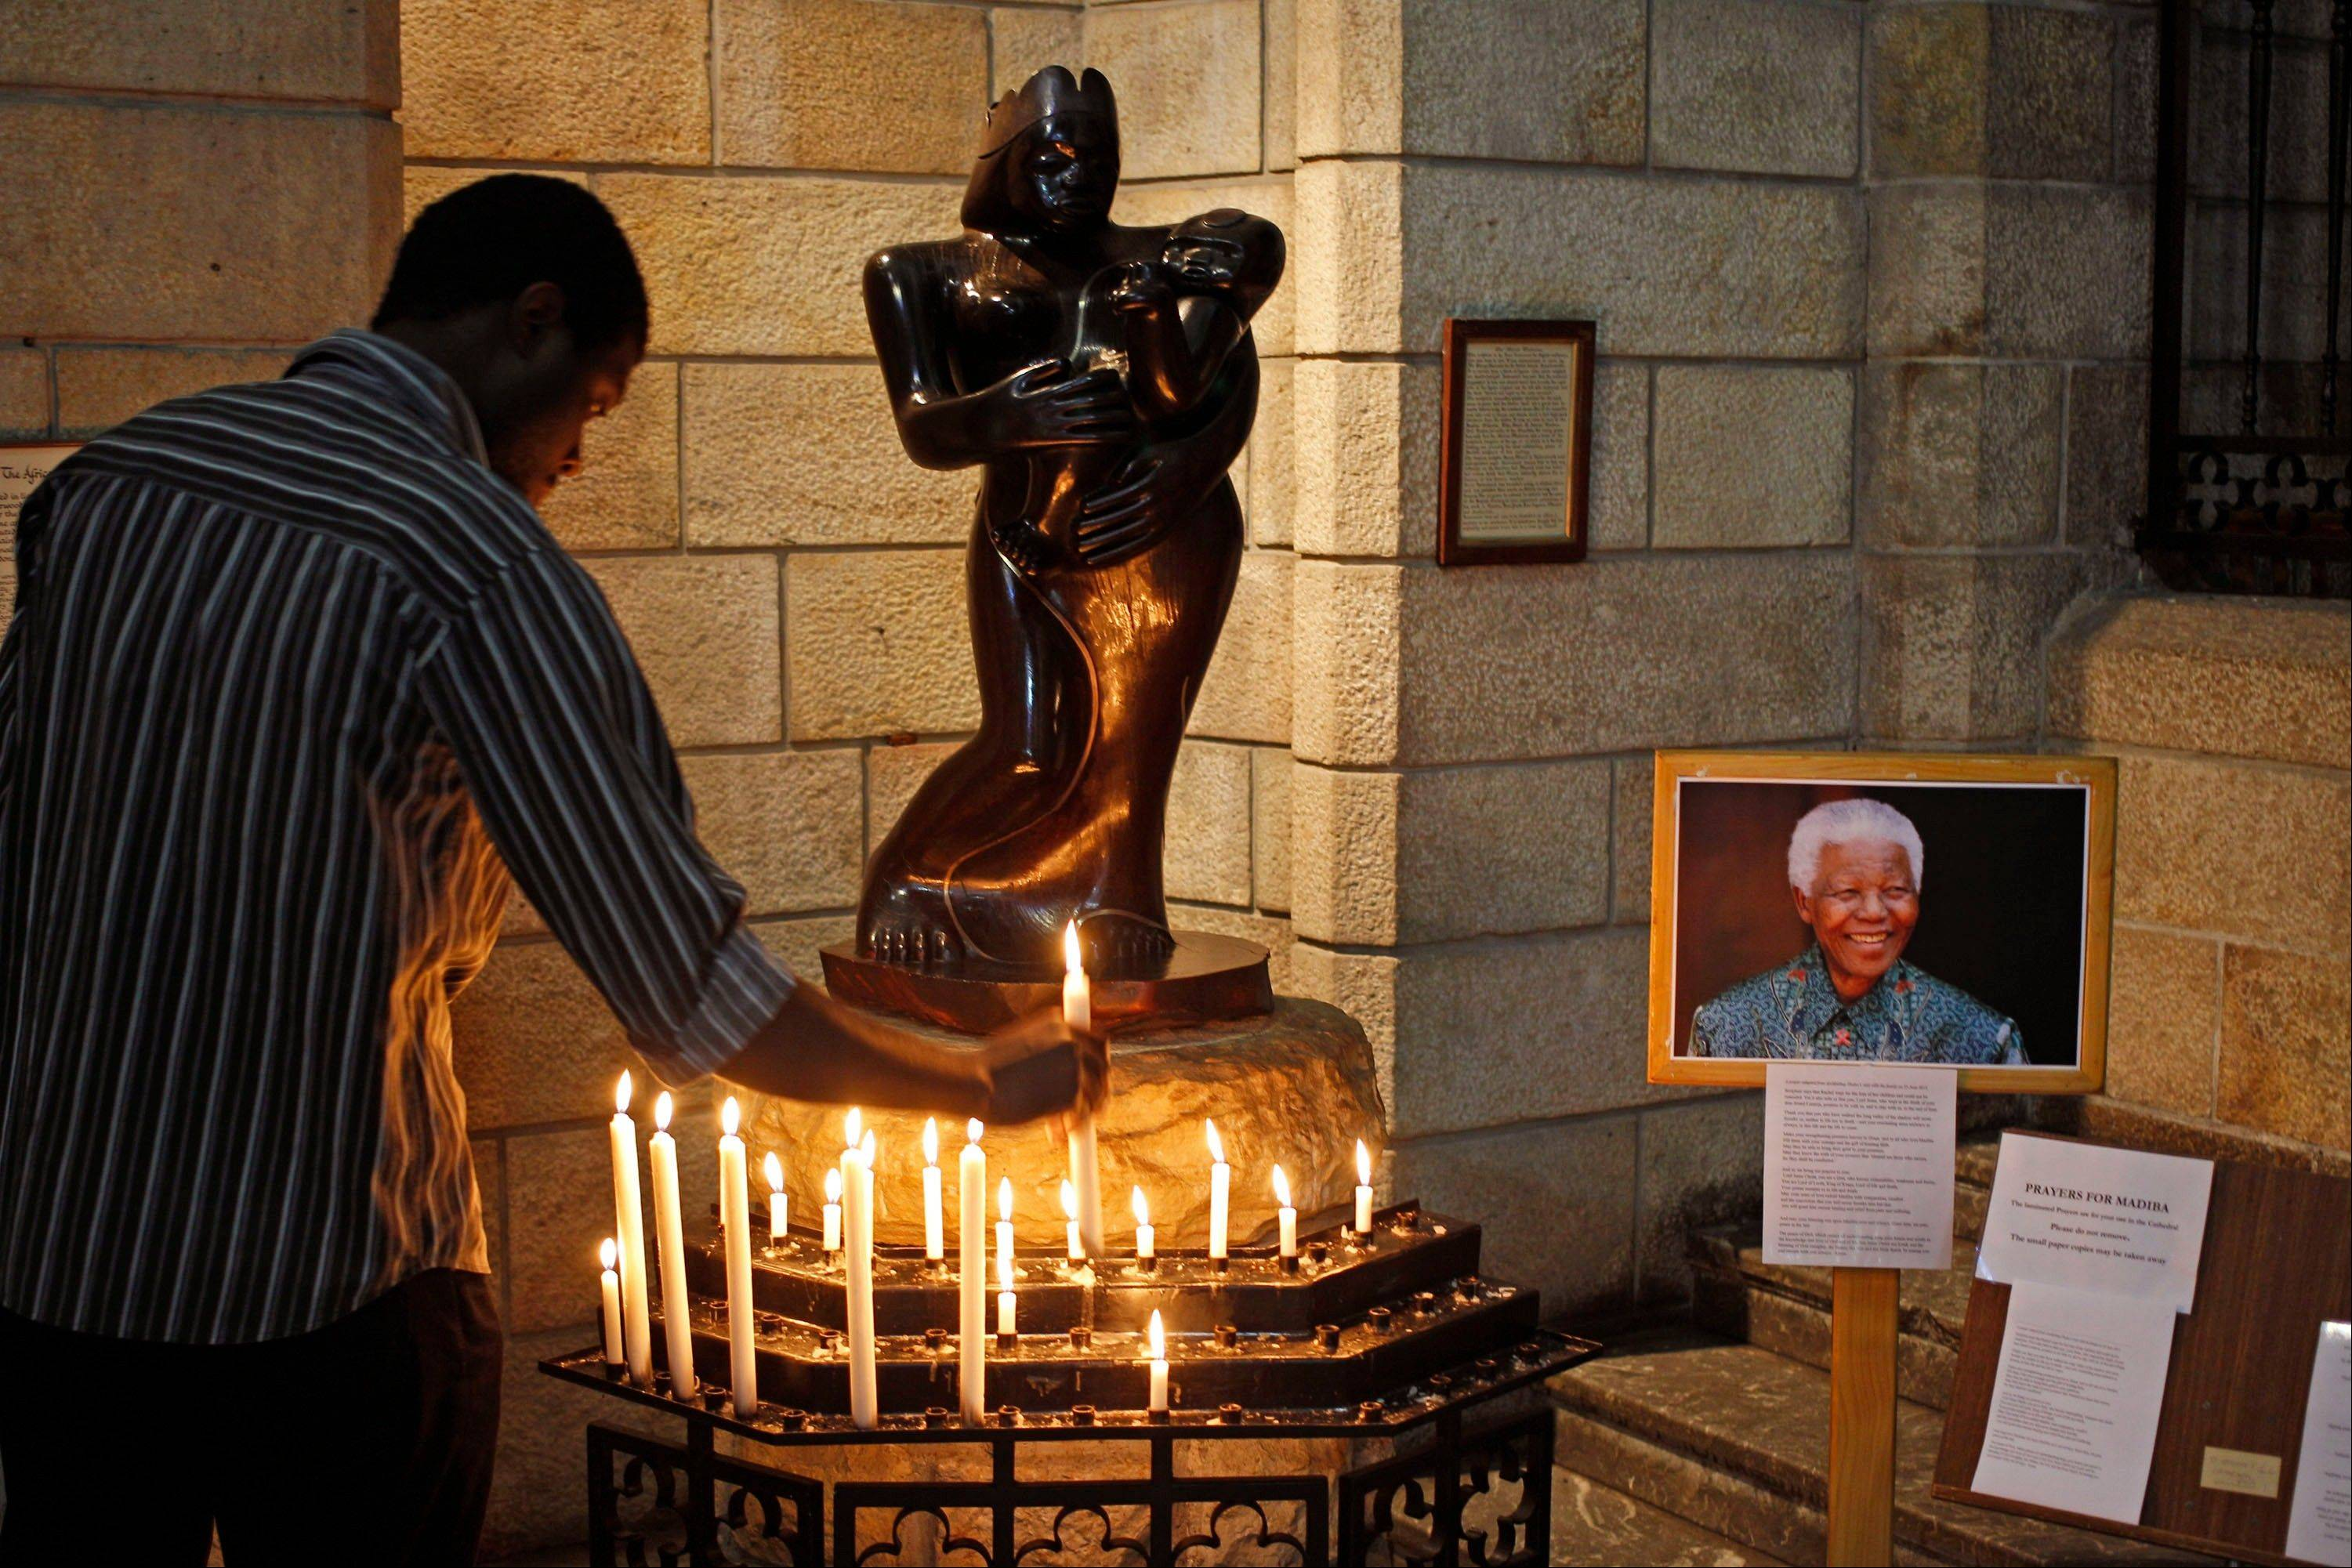 A man places a candle after he prayed for former South African President Nelson Mandela inside the St. George�s Cathedral in Cape Town, South Africa, Wednesday, July 17, 2013.